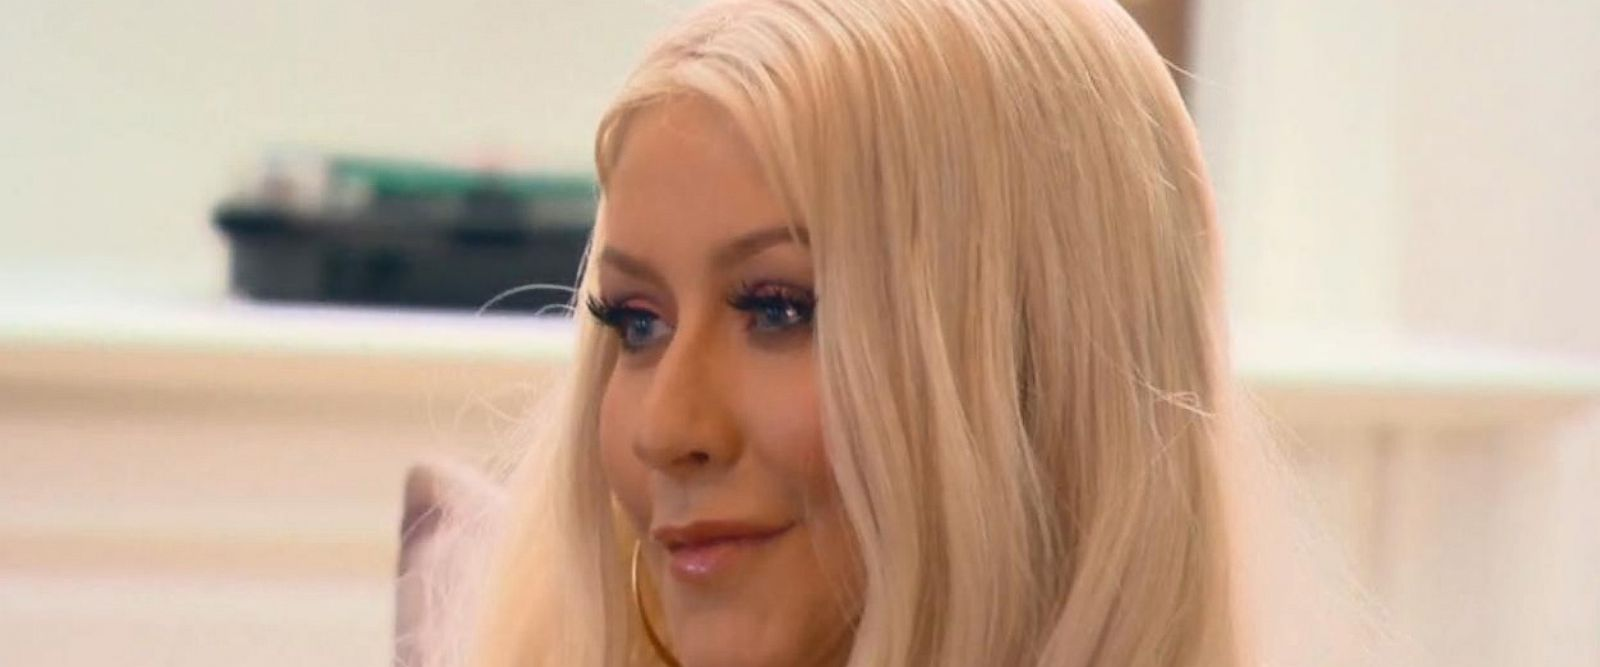 VIDEO: Christina Aguilera surprises family with performance of her song 'Beautiful'